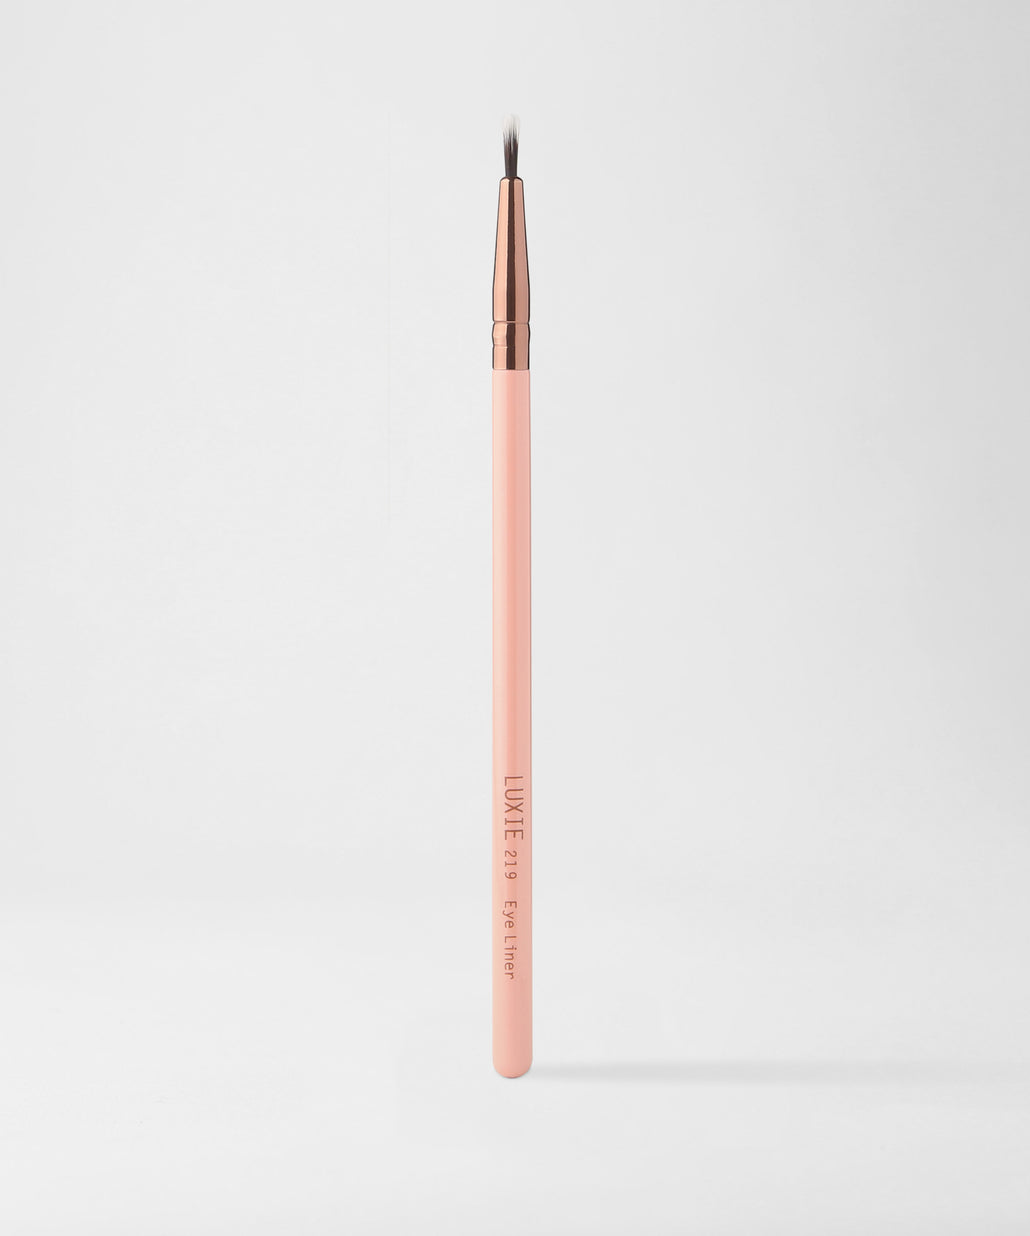 LUXIE 219 Eye Liner Brush - Rose Gold